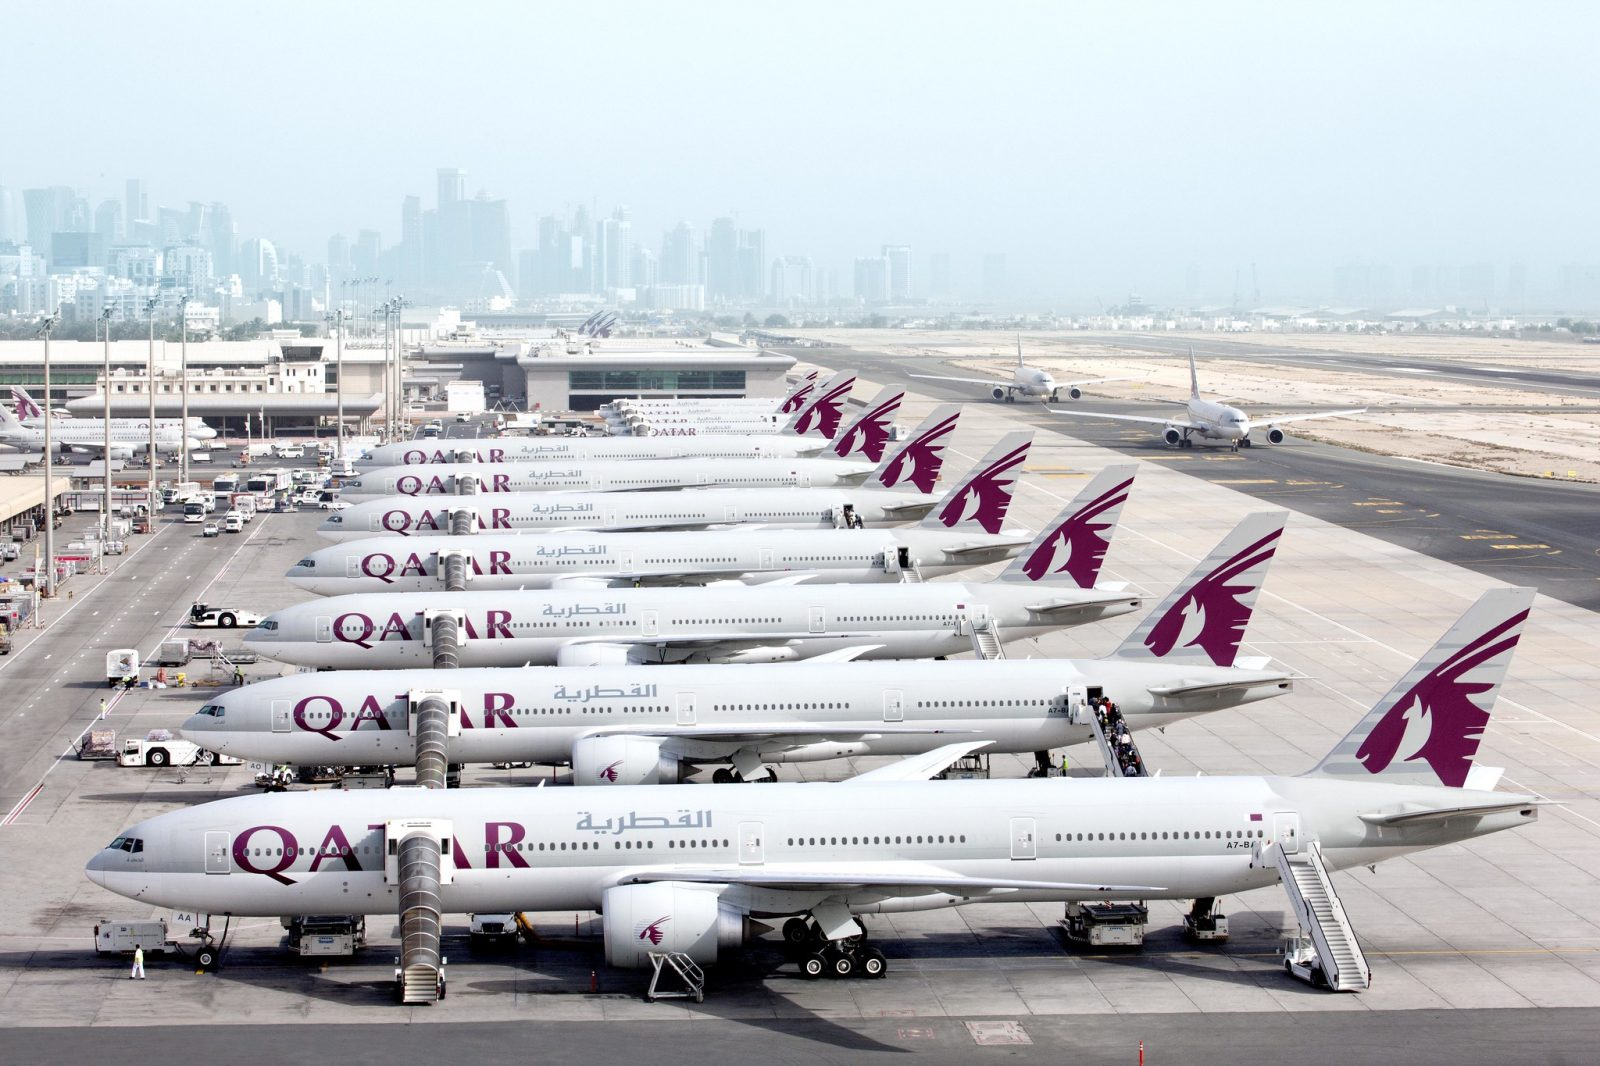 New Airspace On The Way In the Middle East: The Doha FIR